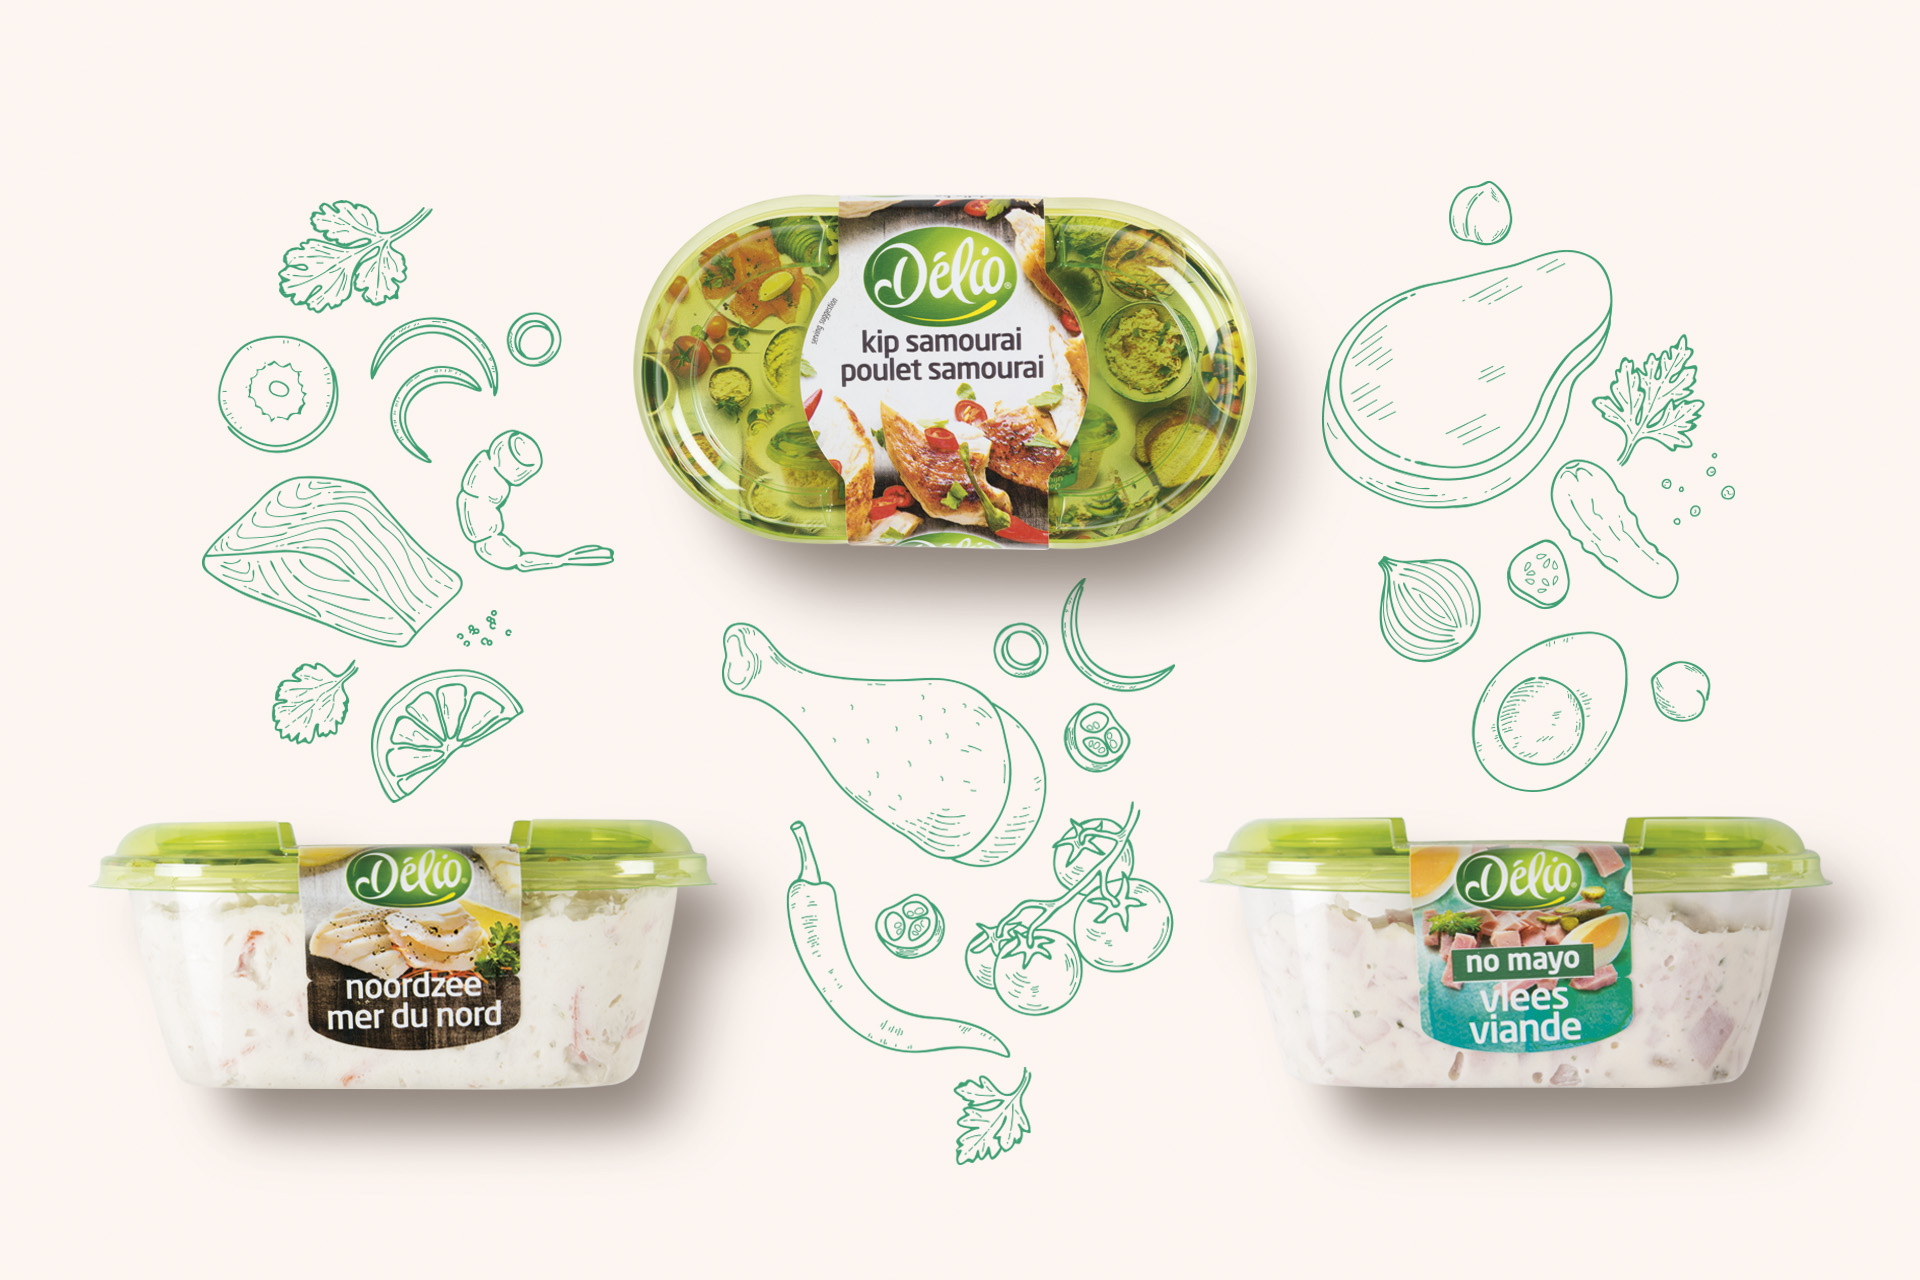 Delio – Bringing Taste Back to Their Labels With a Little Help from DesignRepublic